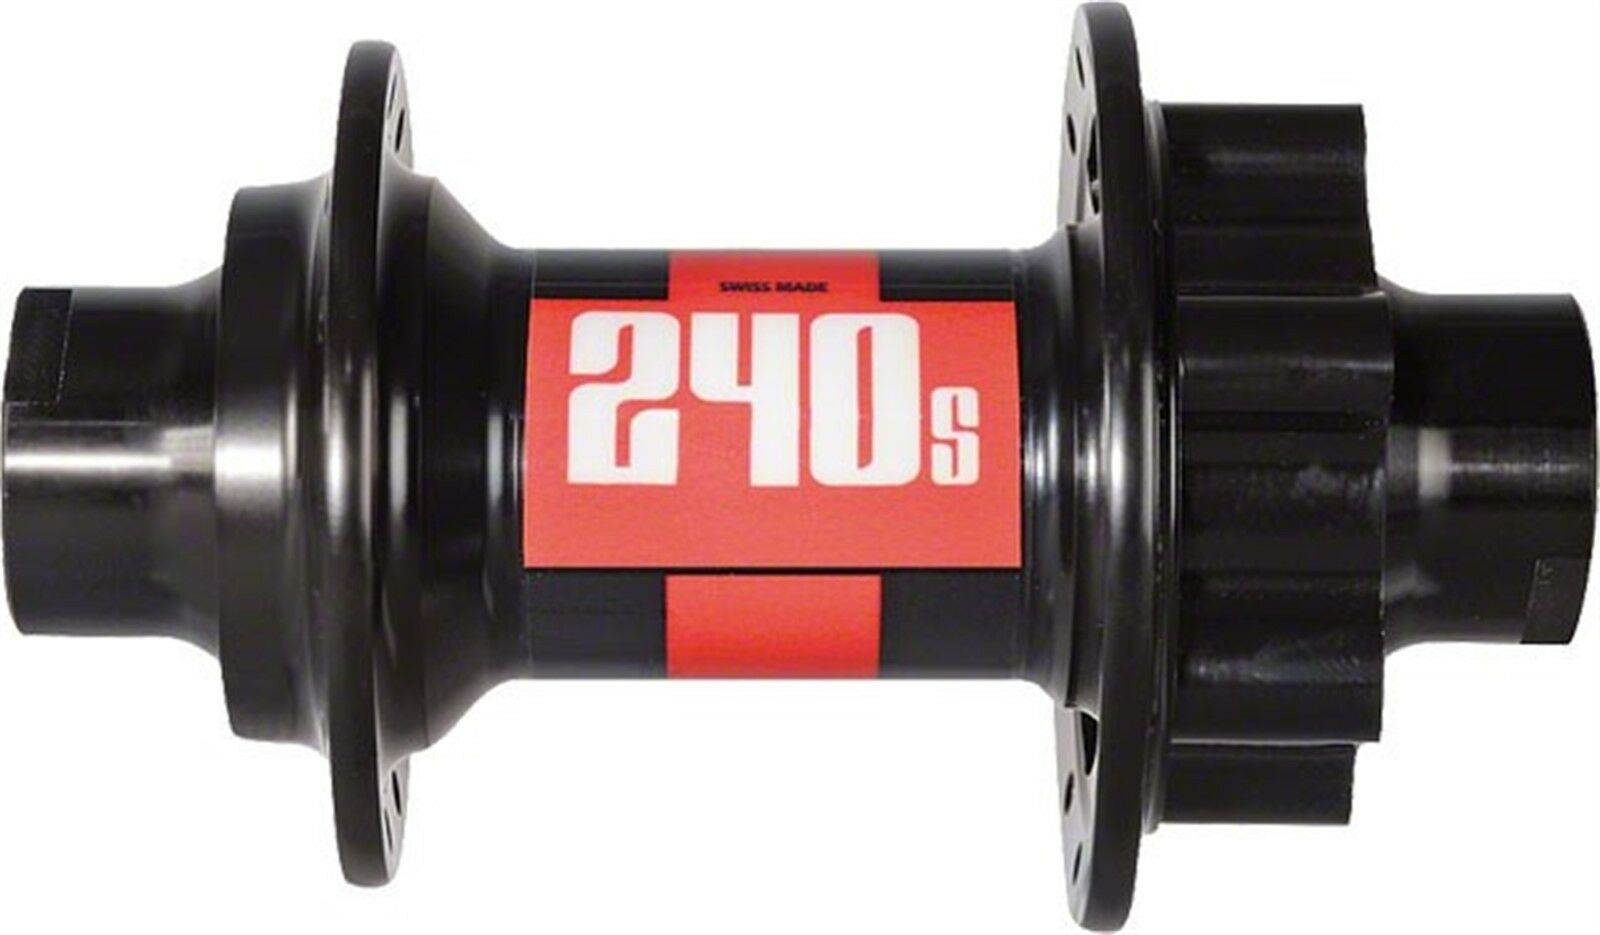 DT Swiss 240S Front Hub   32h 20mm Thru Axle 6-Bolt Disc  up to 65% off